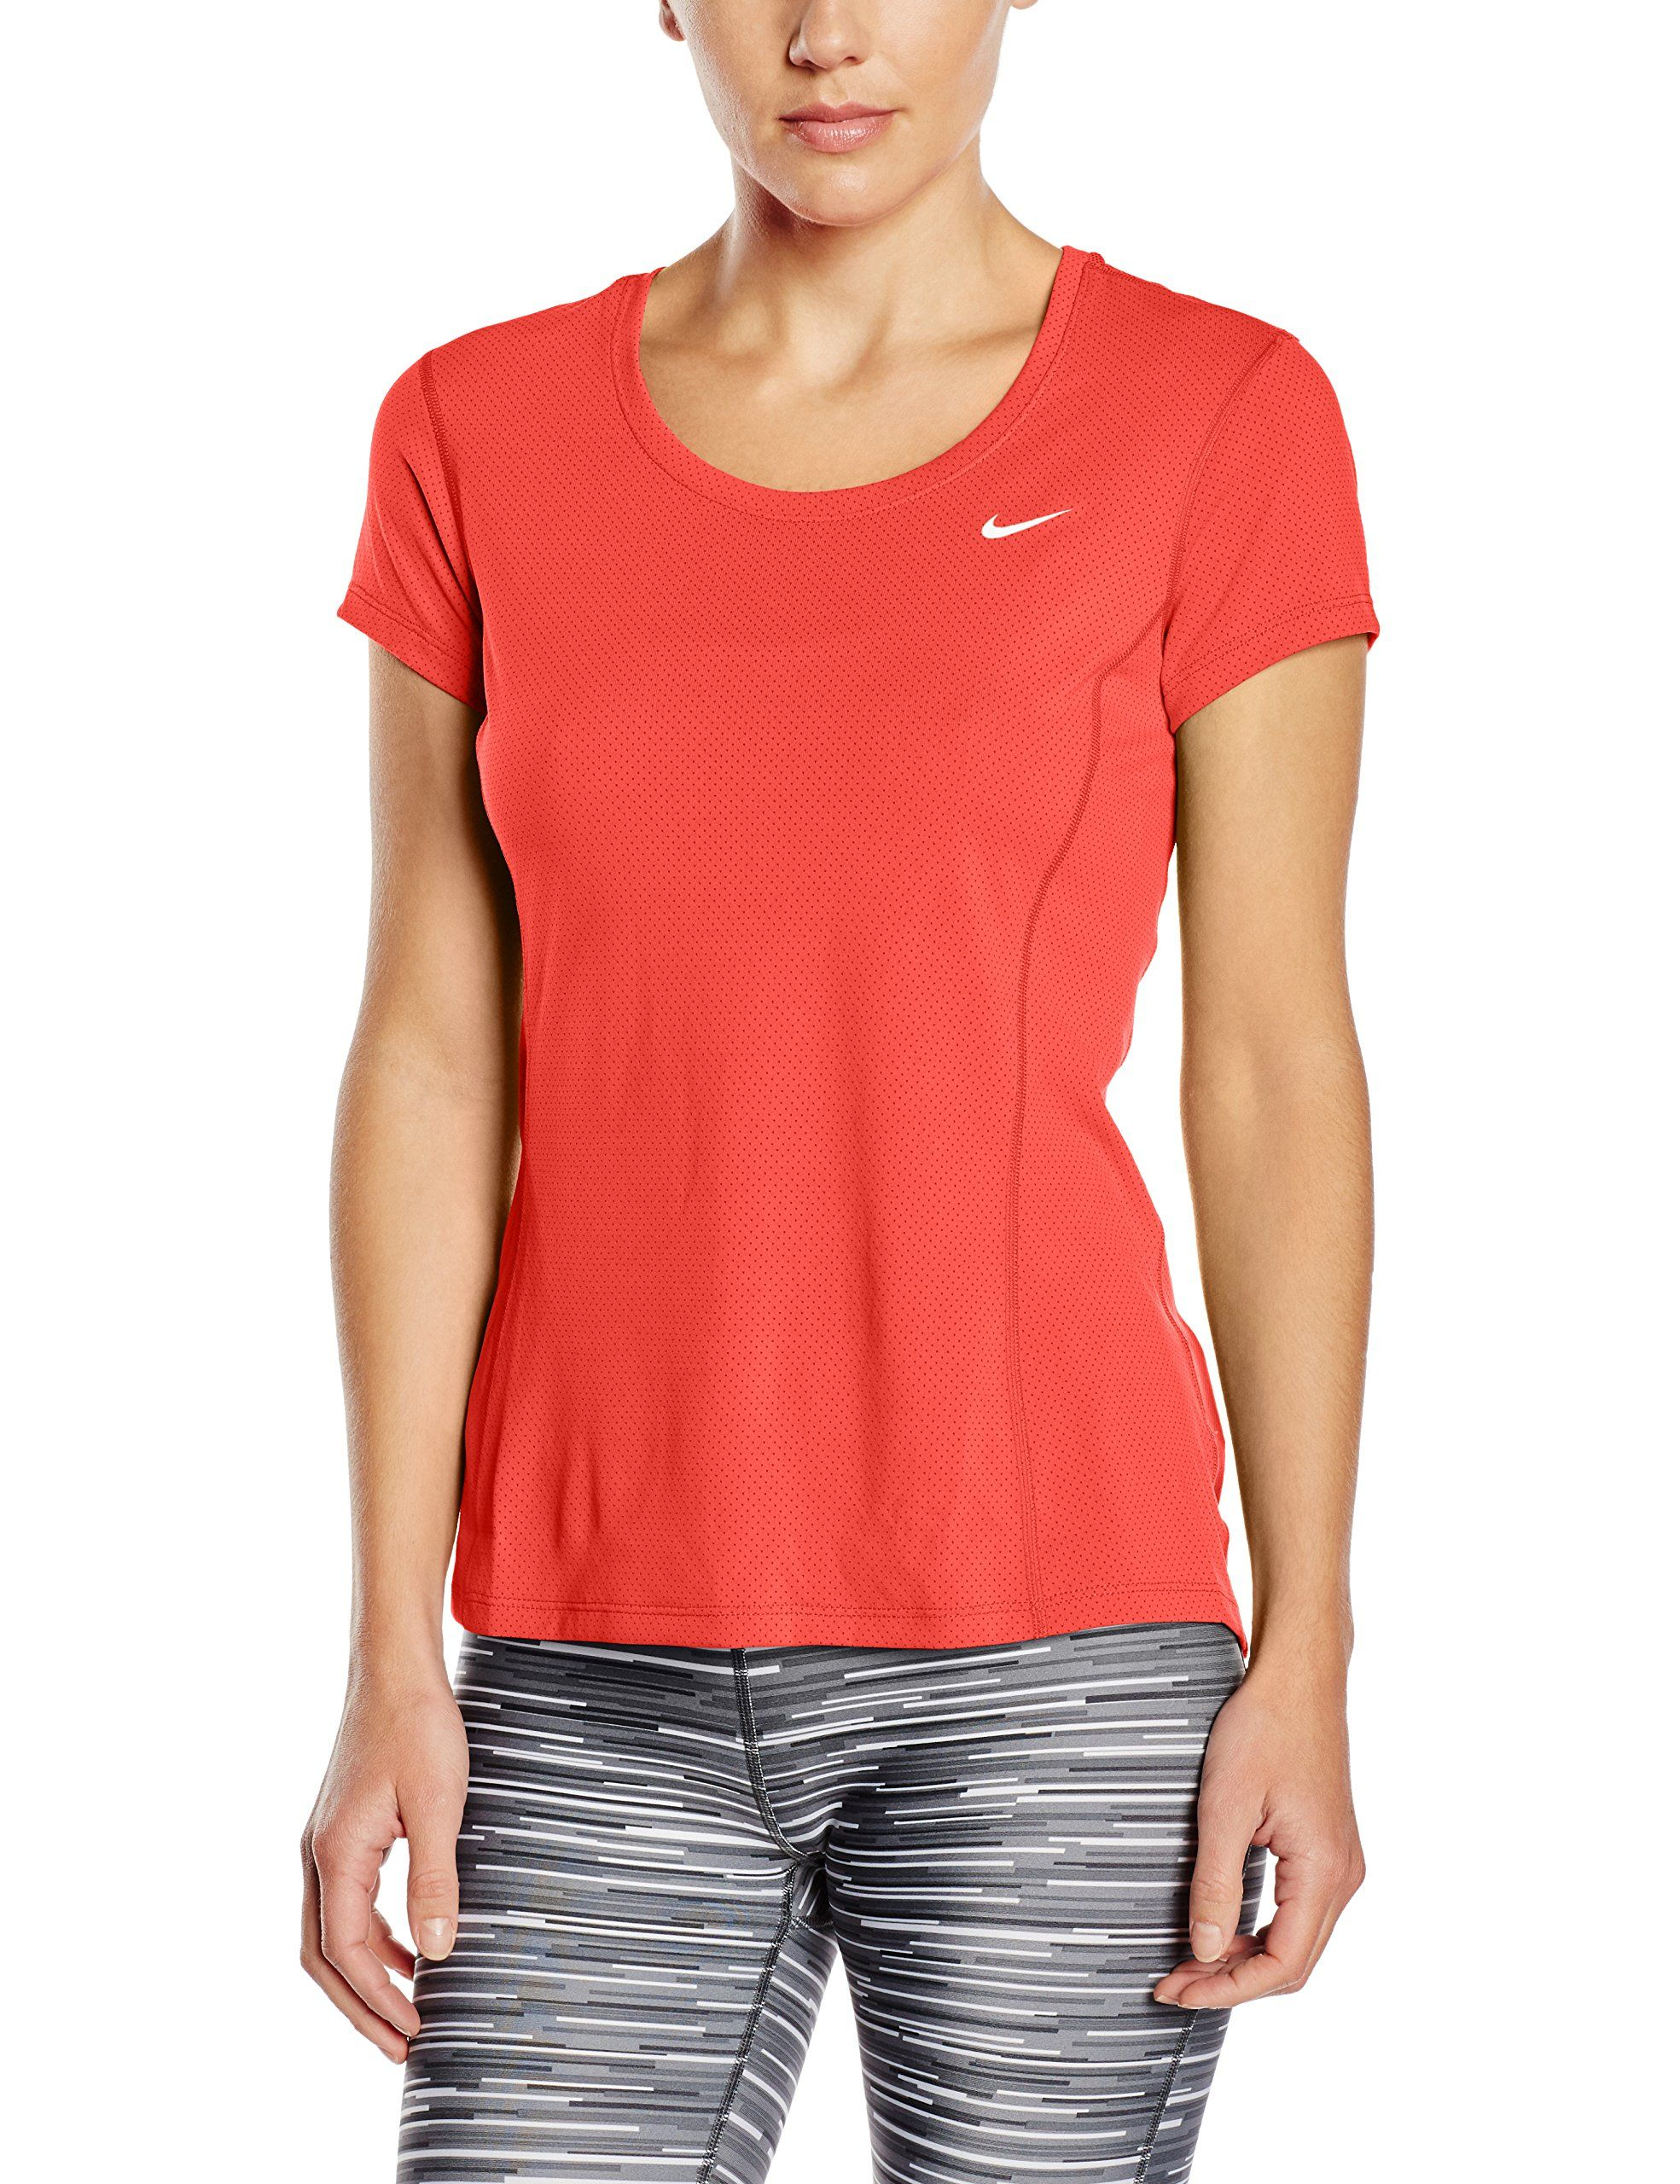 Nike Womens Dri-FIT Contour Short Sleeve Light Crimson/Reflective Silver  T-Shirt XS. Lightweight Dri-FIT/STAY COOL mesh fabric wicks away sweat and  helps ...